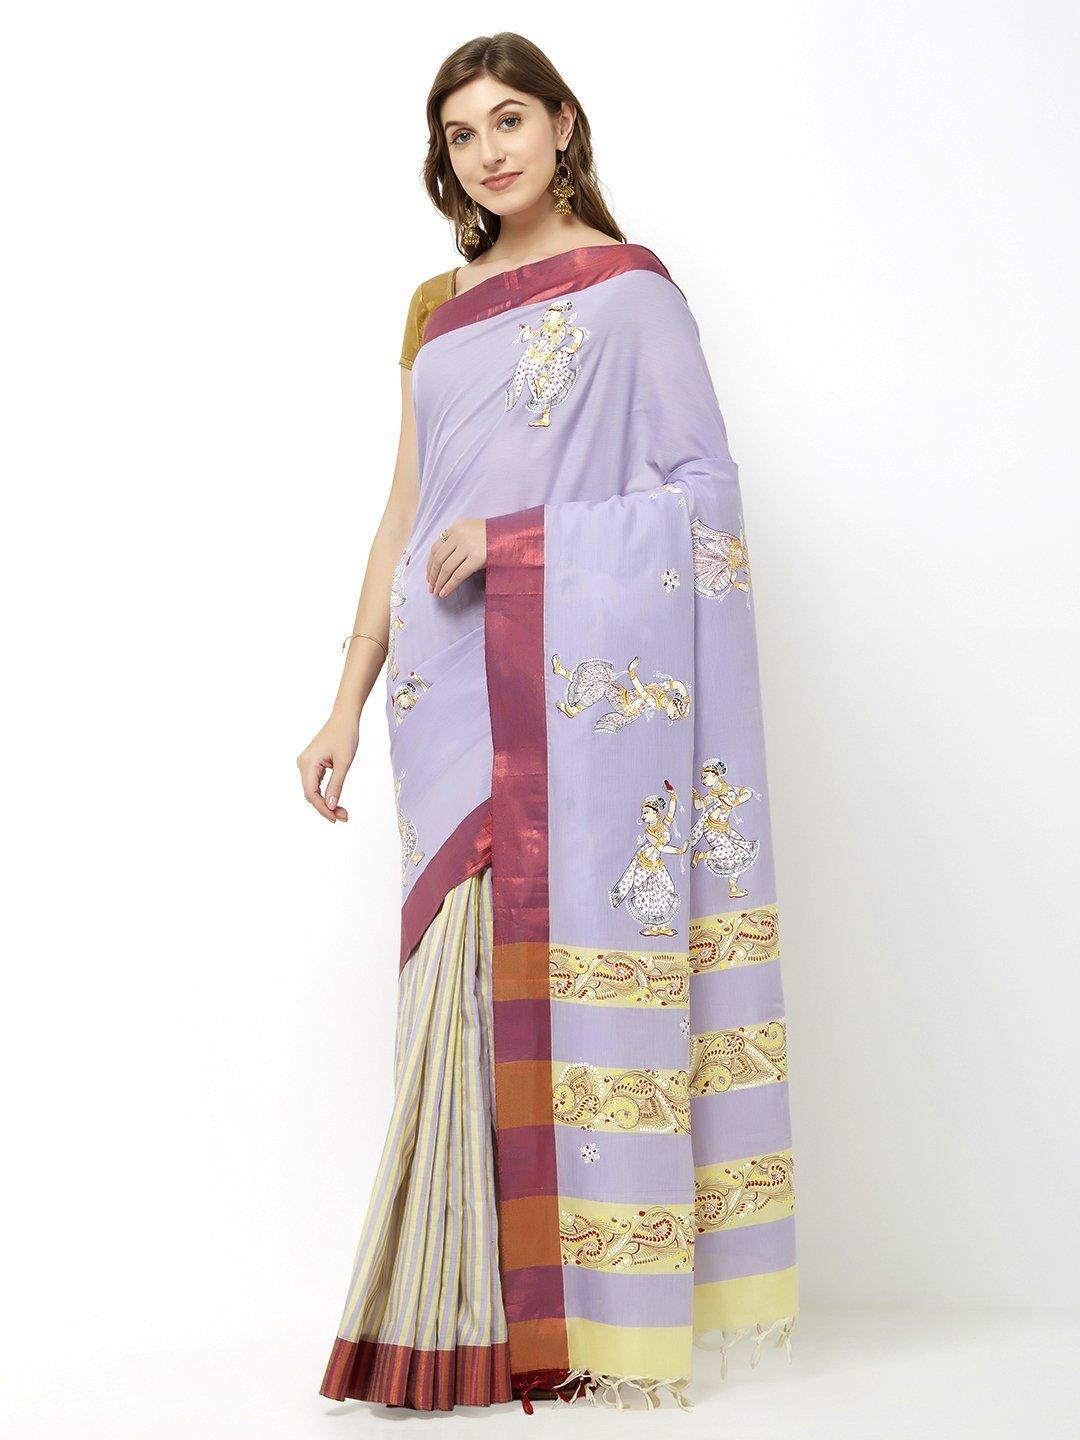 CraftsCollection.in - Grey Cotton Saree With Pattachitra motifs